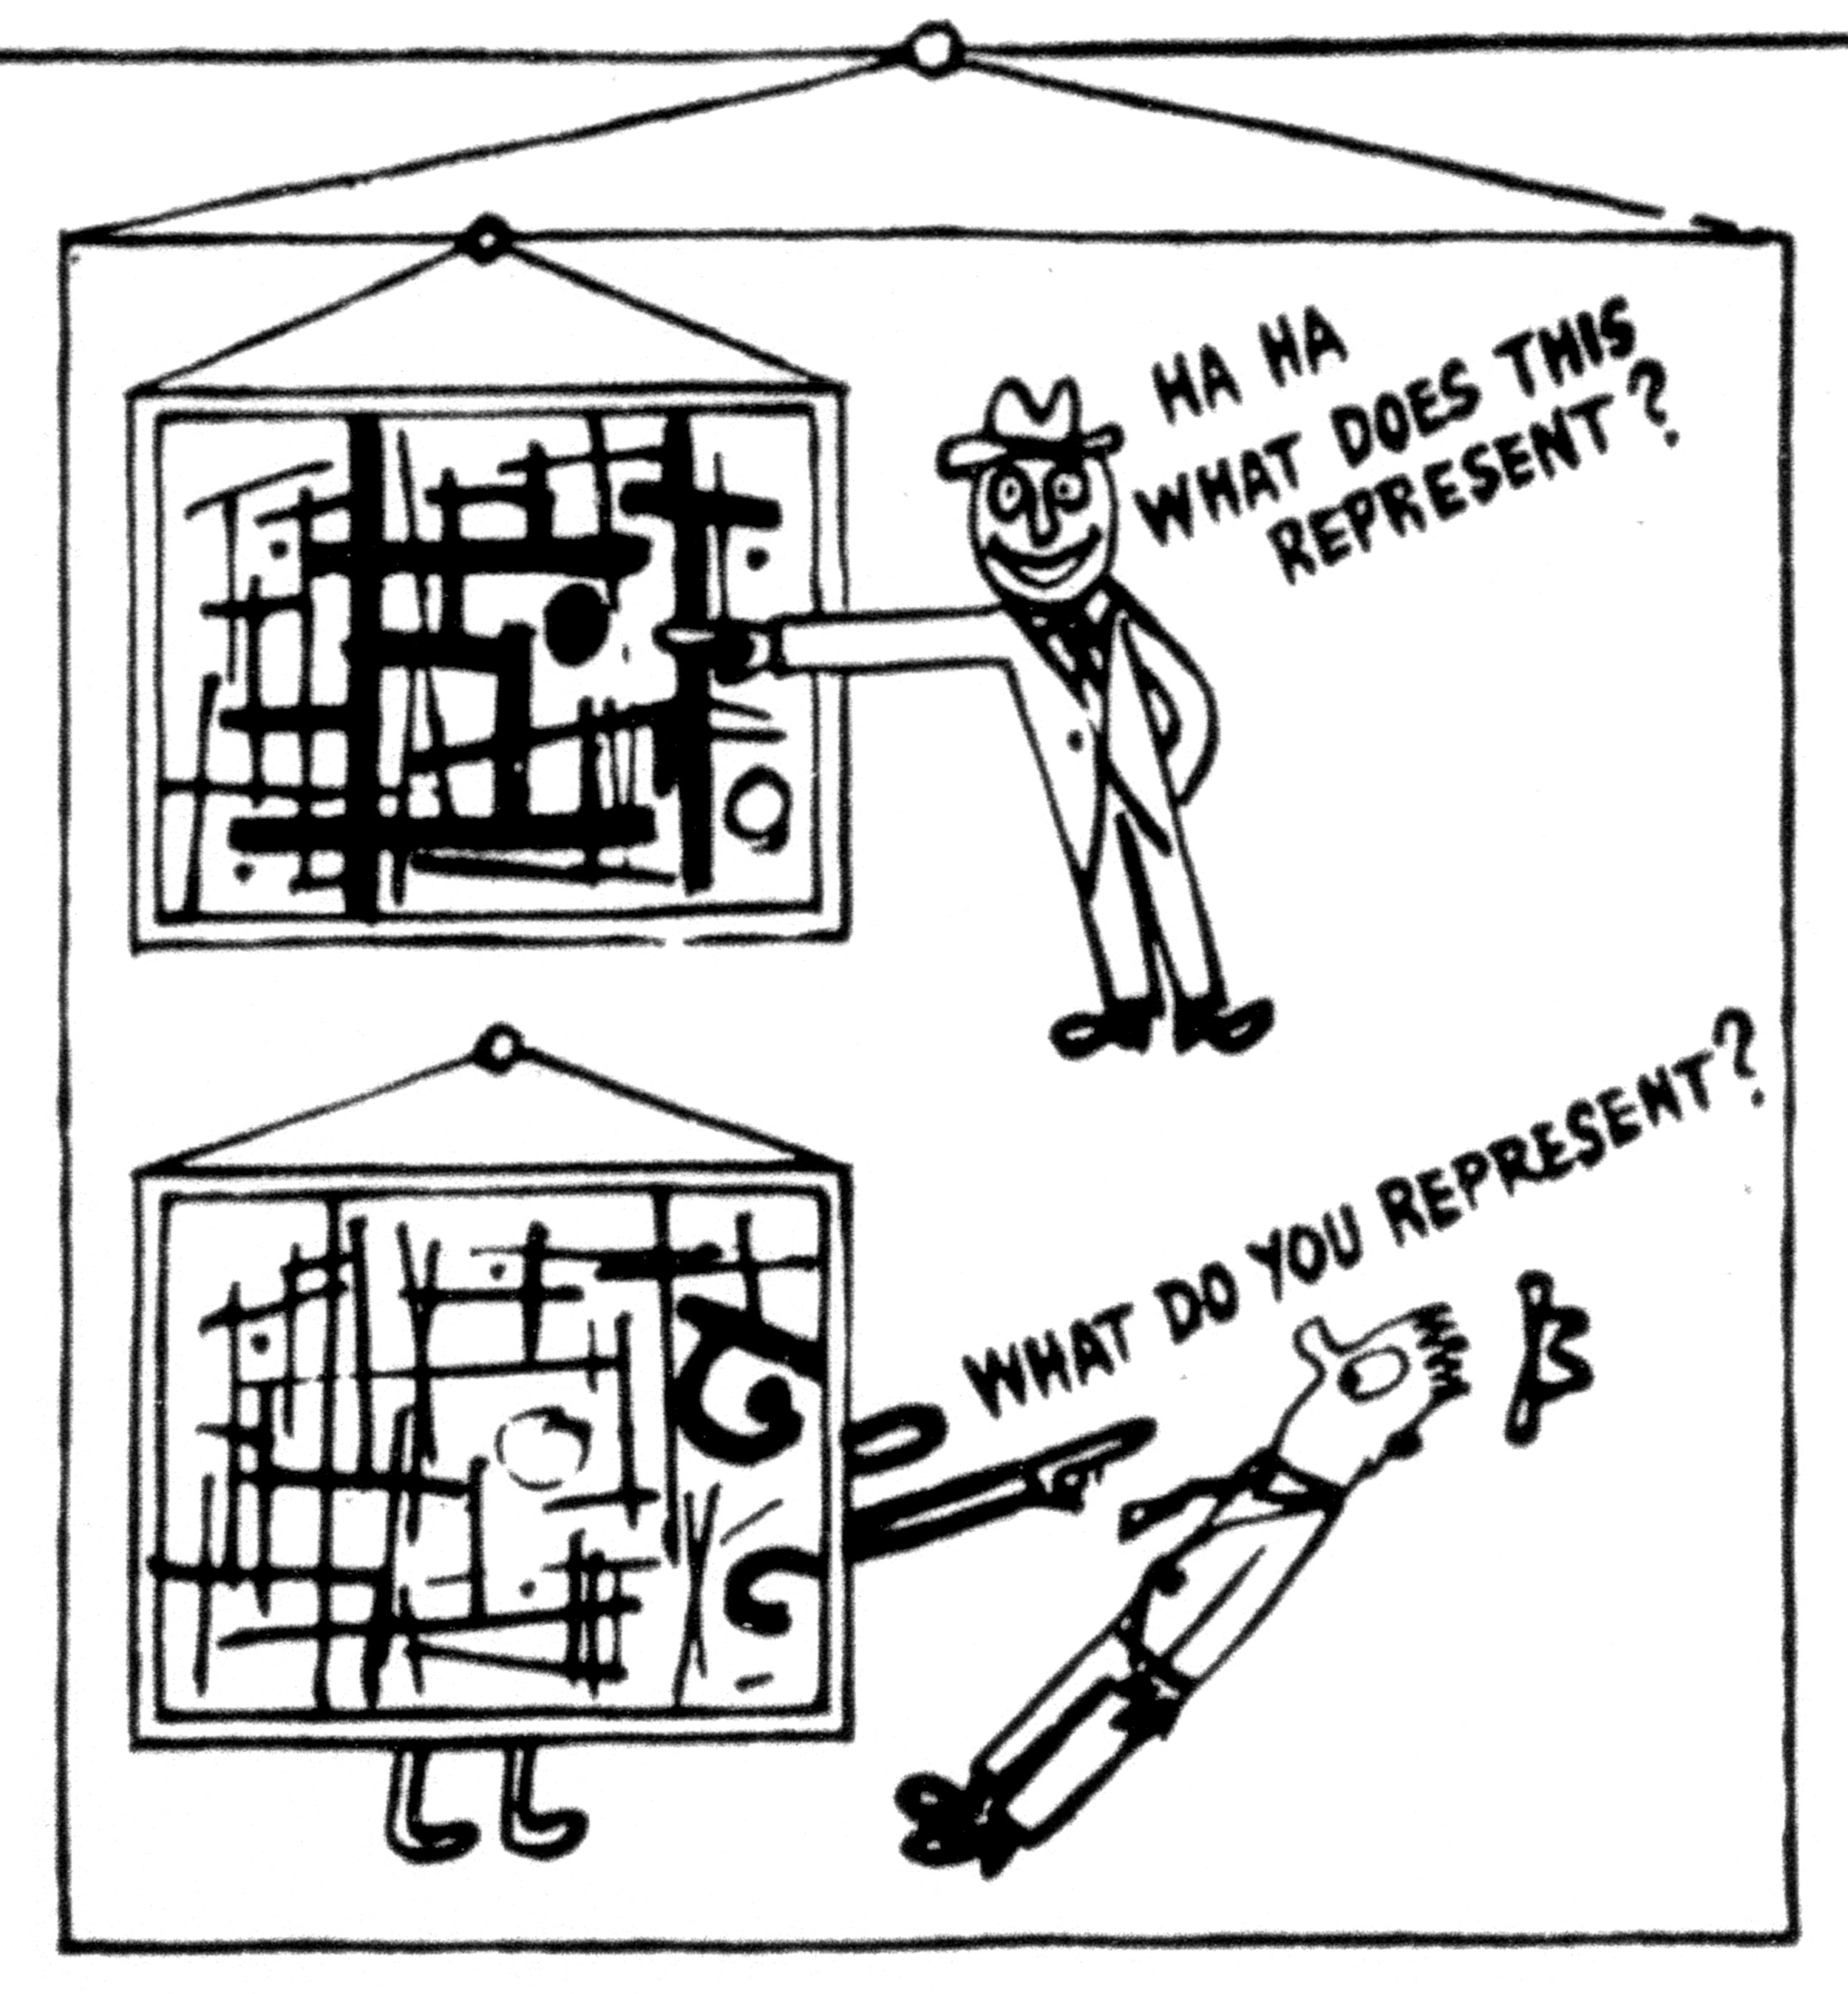 """Ad Reinhardt """"How to Look at a Cubist Painting,"""" P.M., January 27, 1946 (detail) © 2015 Estate of Ad Reinhardt/Artists Rights Society (ARS), New York; courtesy David Zwirner, New York/London"""